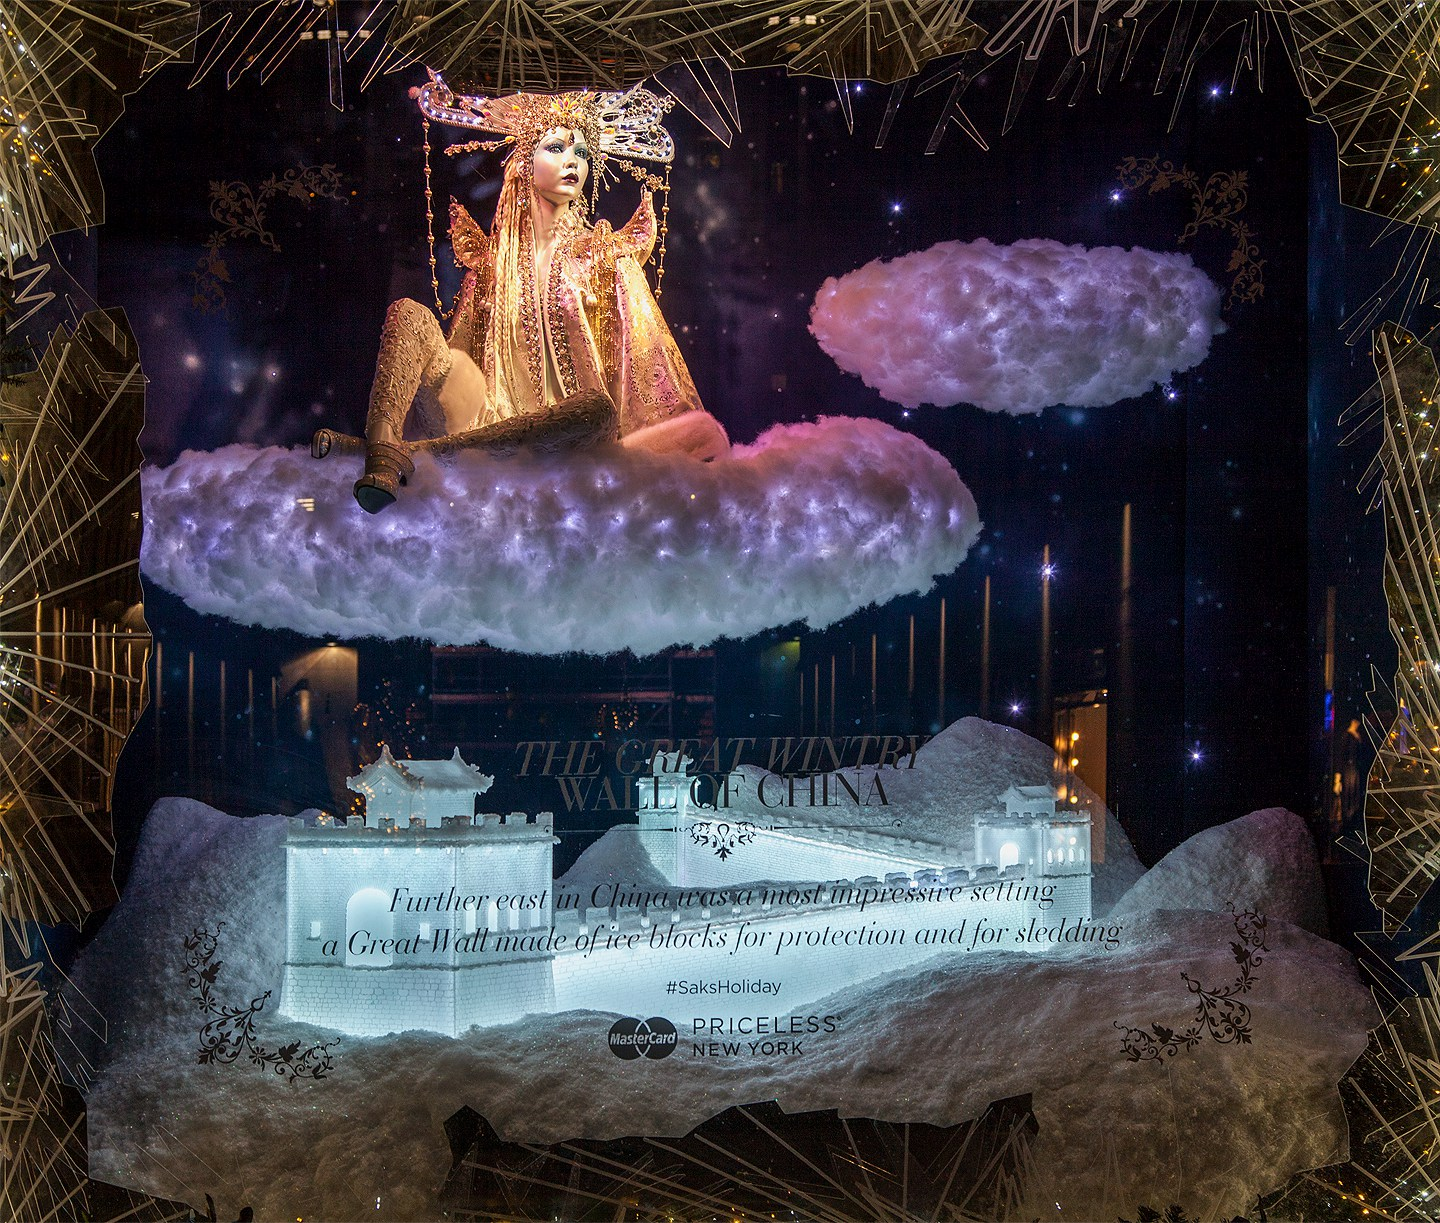 Saks Fifth Avenue Holiday Windows 2015: The Great Wall of China (Plexiglass, Wax, LEDs; 6' x 2' x 3.5')